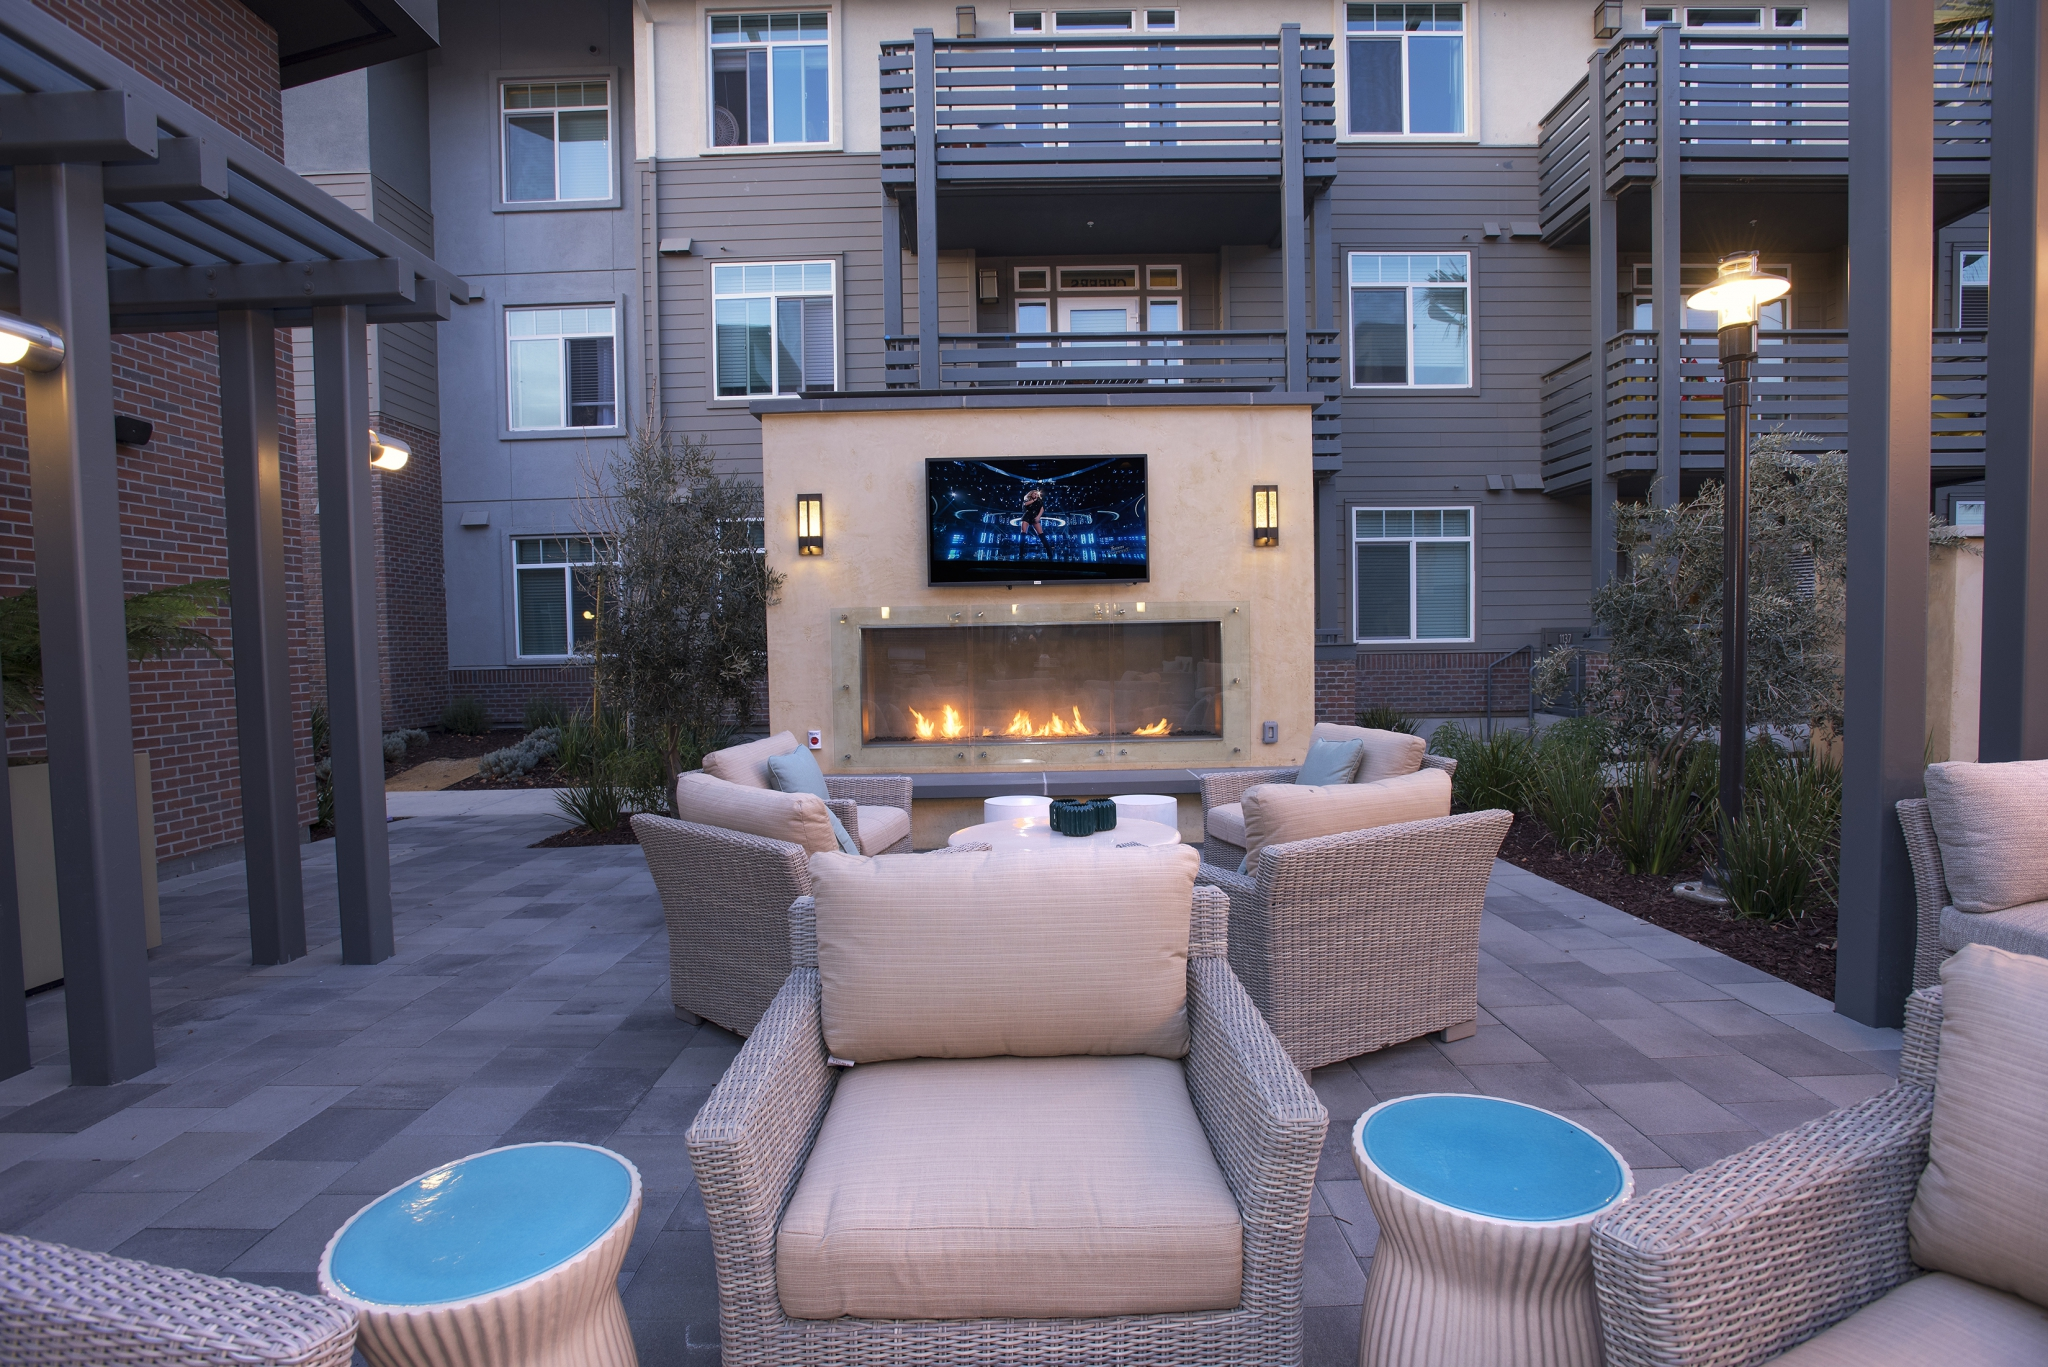 Exterior common area with seating, fireplace and large-screen television surrounded by apartment buildings